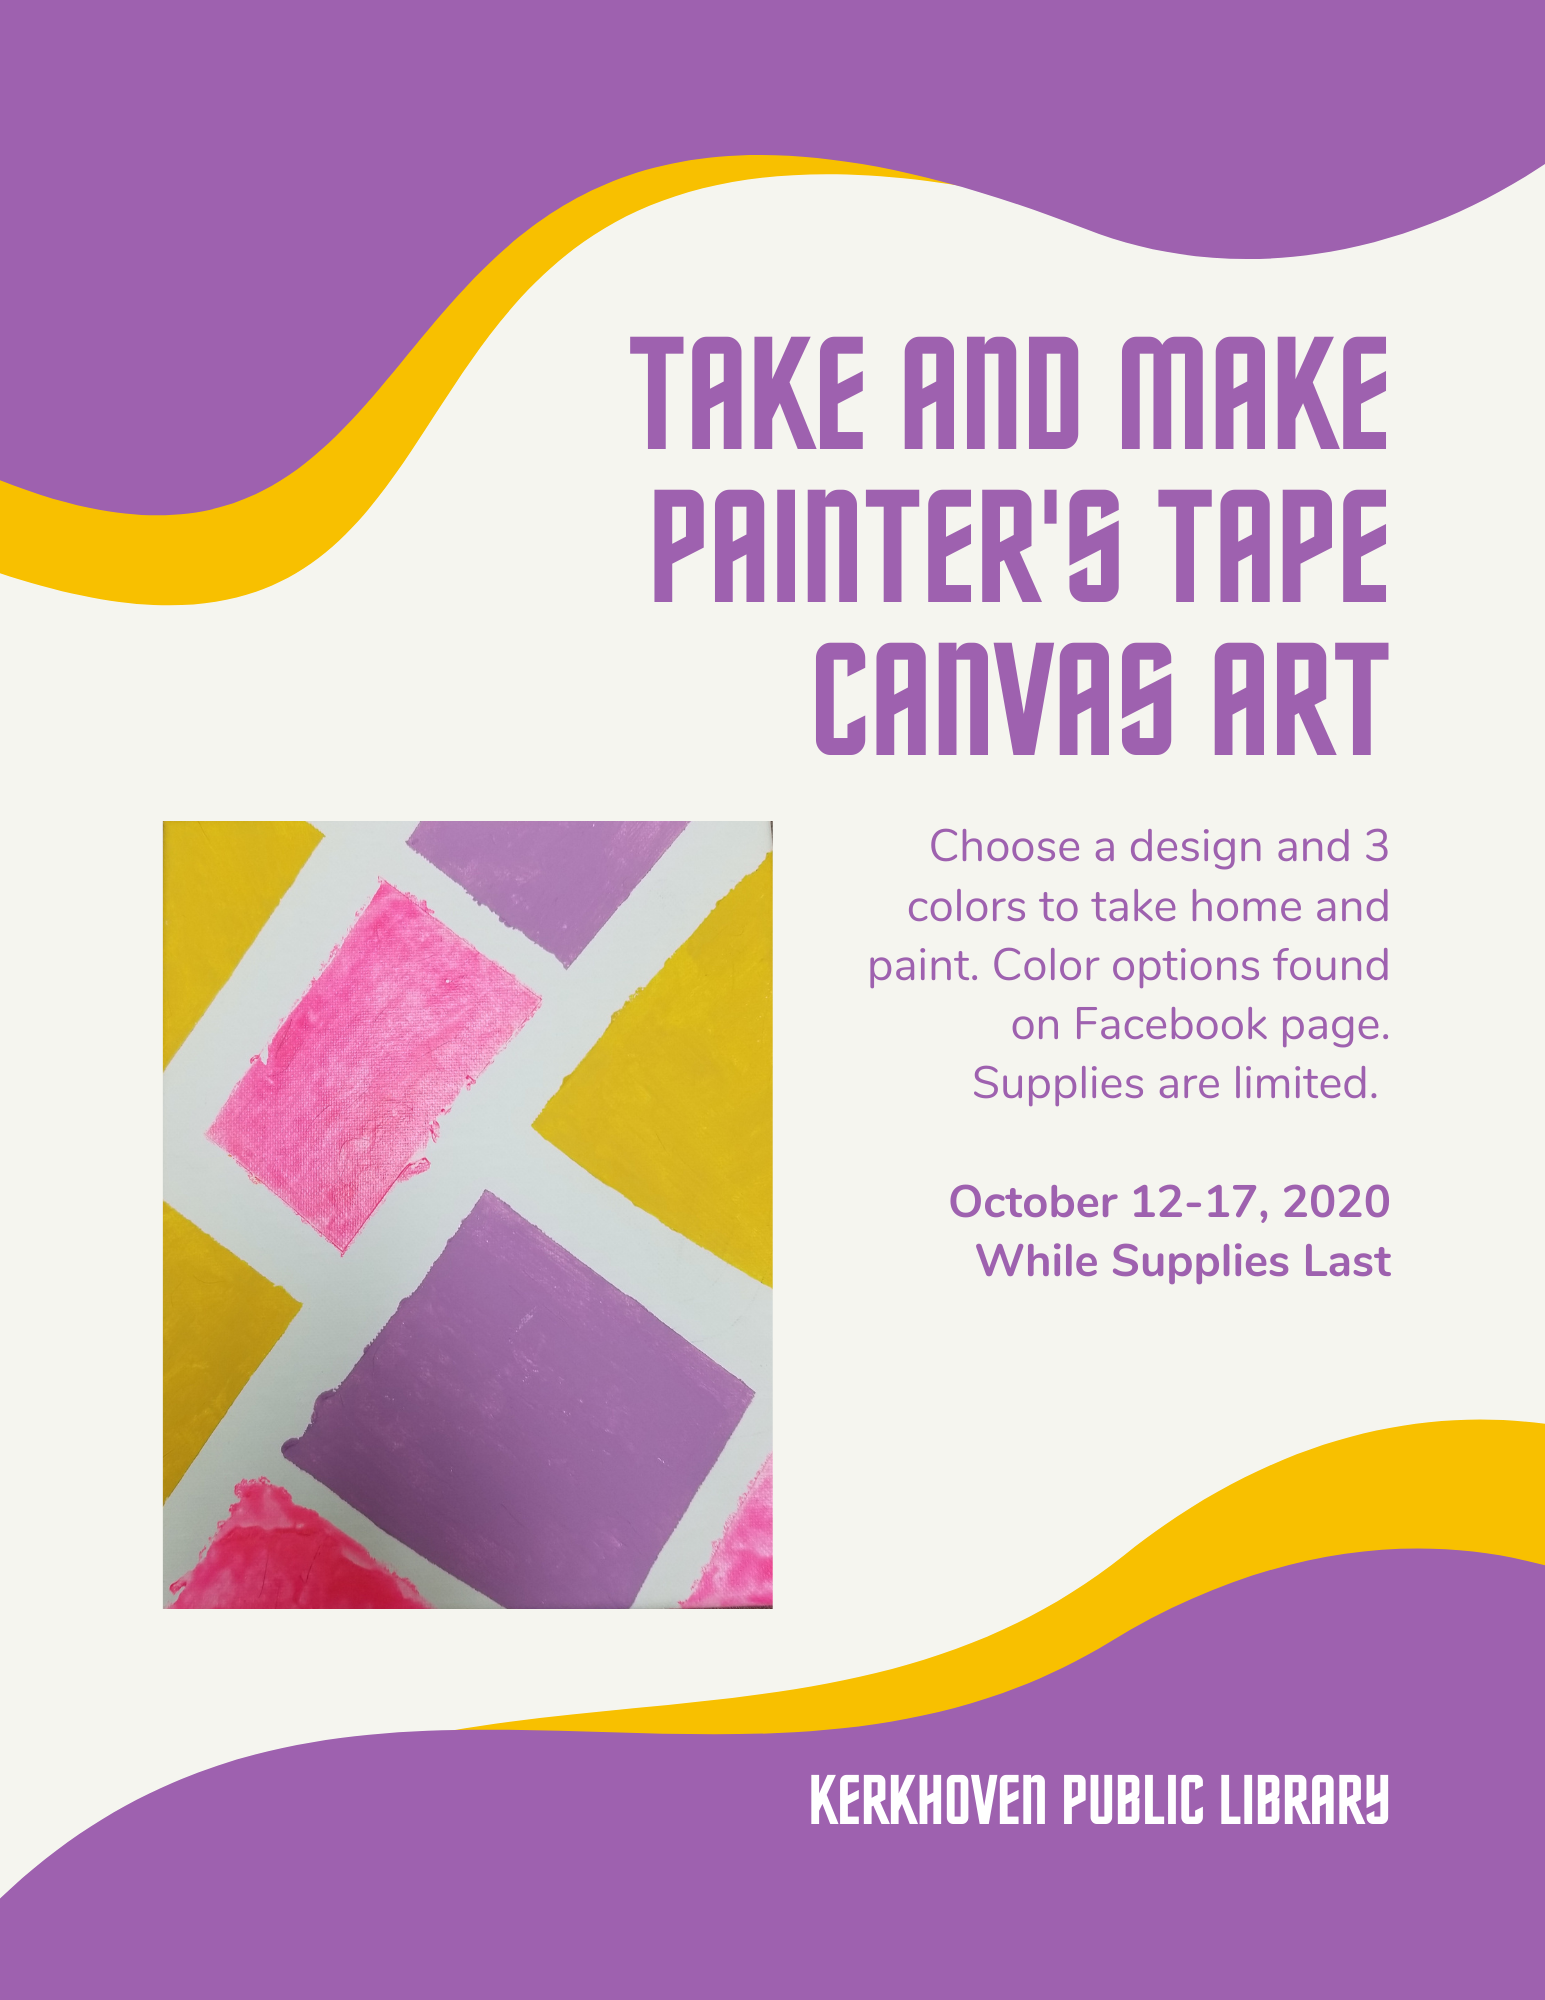 Beginning the October 12th, we will be offering a Painter's Tape Canvas Make and Take project while supplies last. Participants will get 3 colors of paint, and a brush if needed. They will take the supplies home and send a picture to nicole.schmiesing@pioneerland.lib.mn.us when completed.